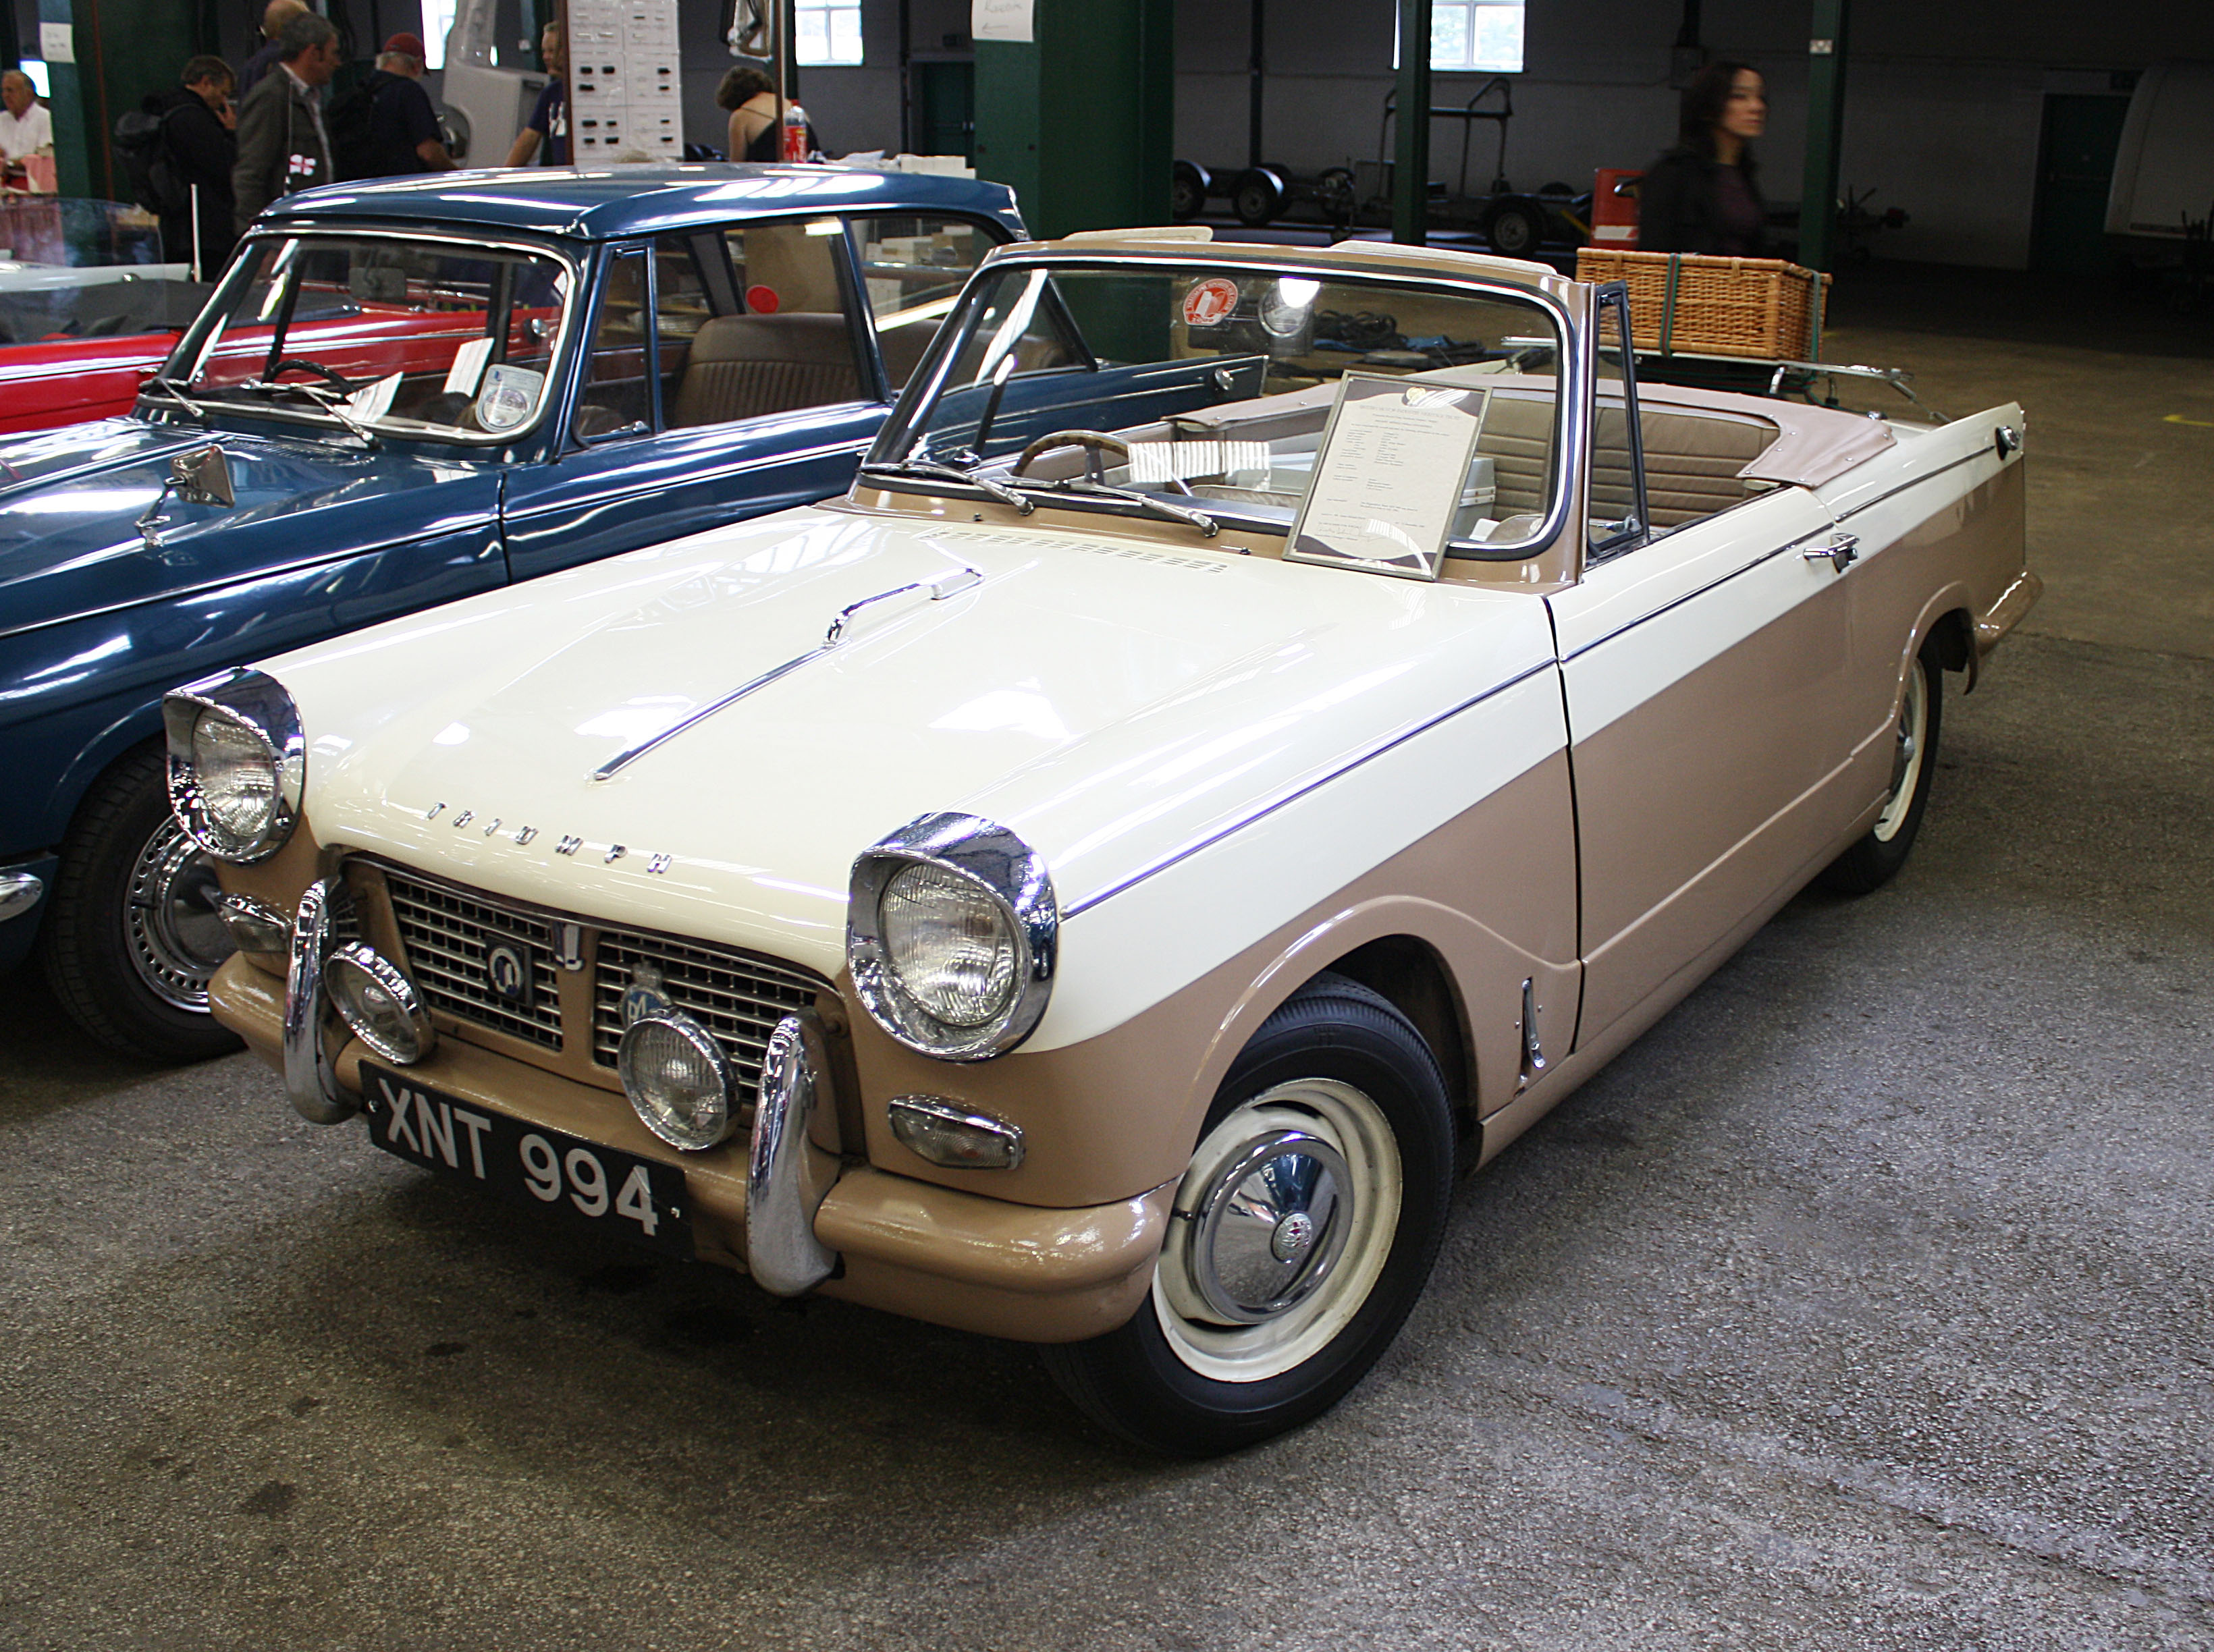 xnt994 uk triumph herald convertible